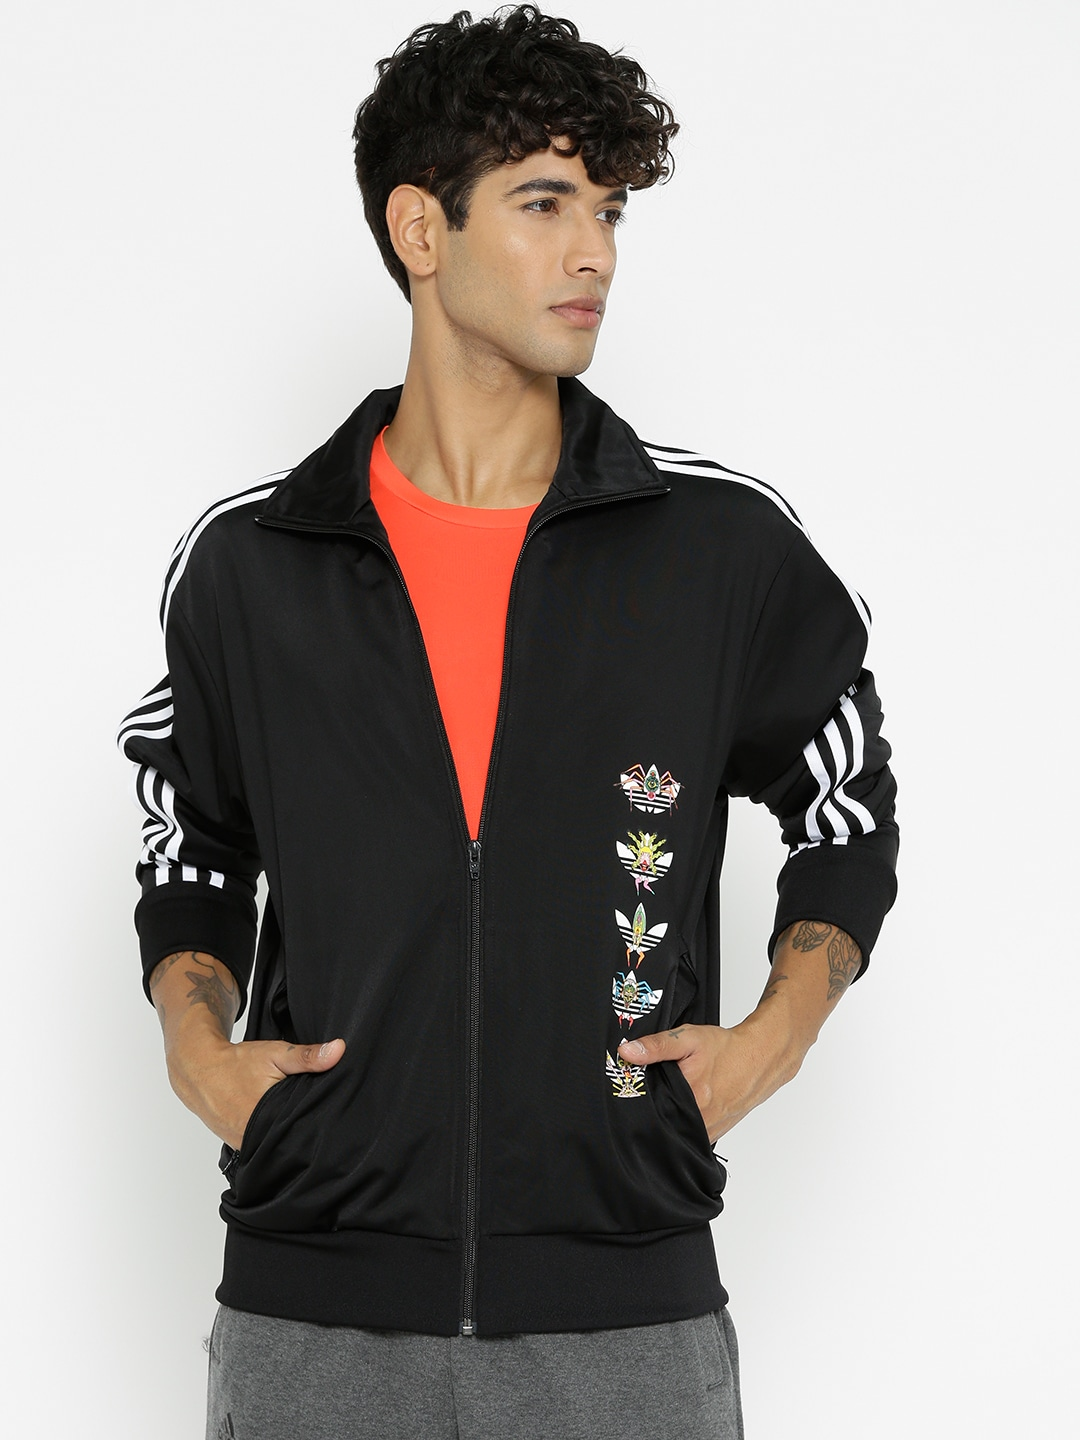 c95ef3c9d13c adidas - Exclusive adidas Online Store in India at Myntra